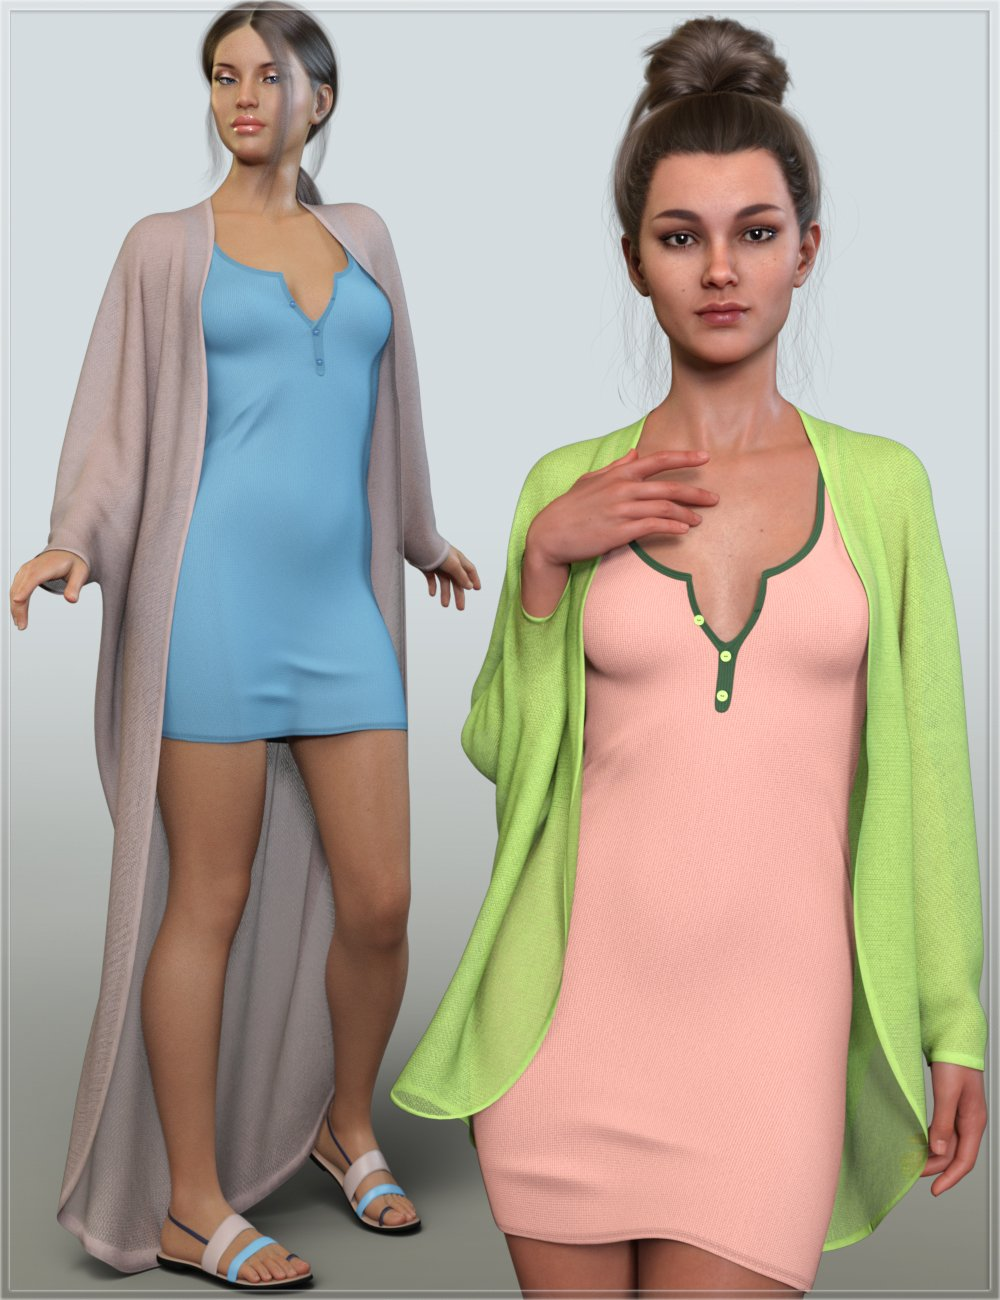 dForce Casual Summer Outfit for Genesis 8 and 8.1 Females by: Nikisatez, 3D Models by Daz 3D